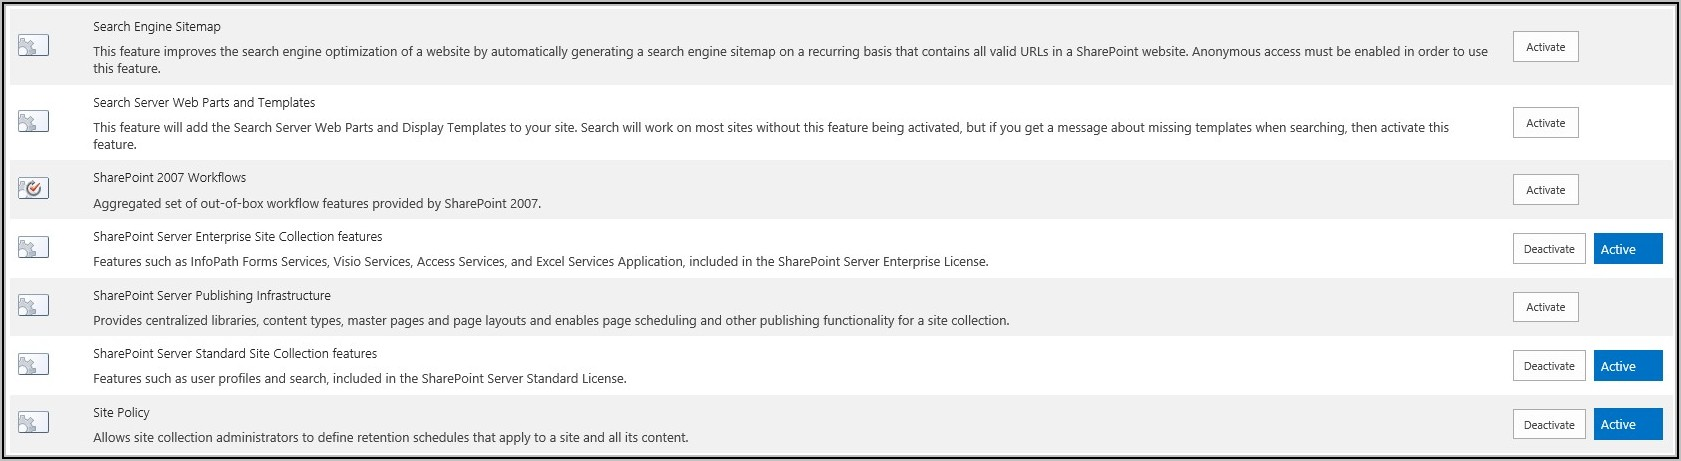 Sharepoint Online Workflow Templates Missing